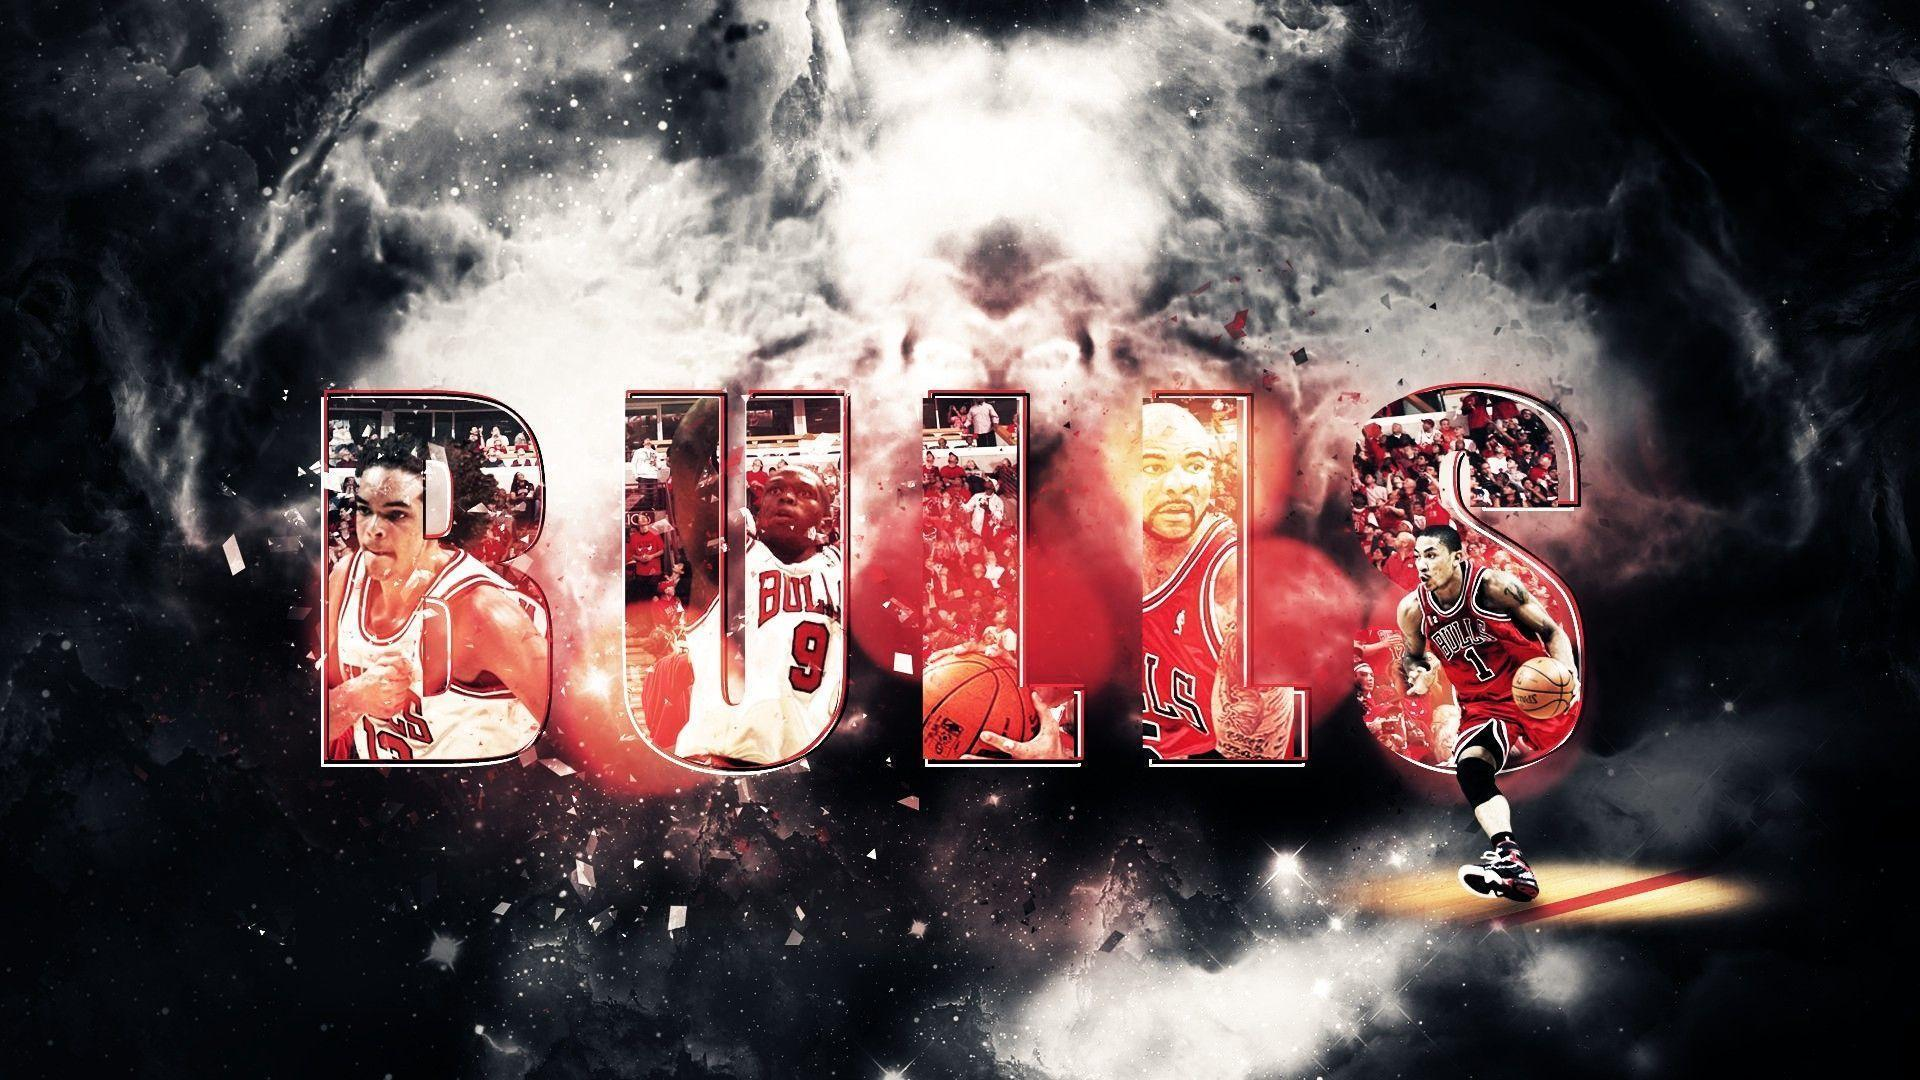 Chicago Bulls HD Wallpaper | Free Download Wallpaper from ...